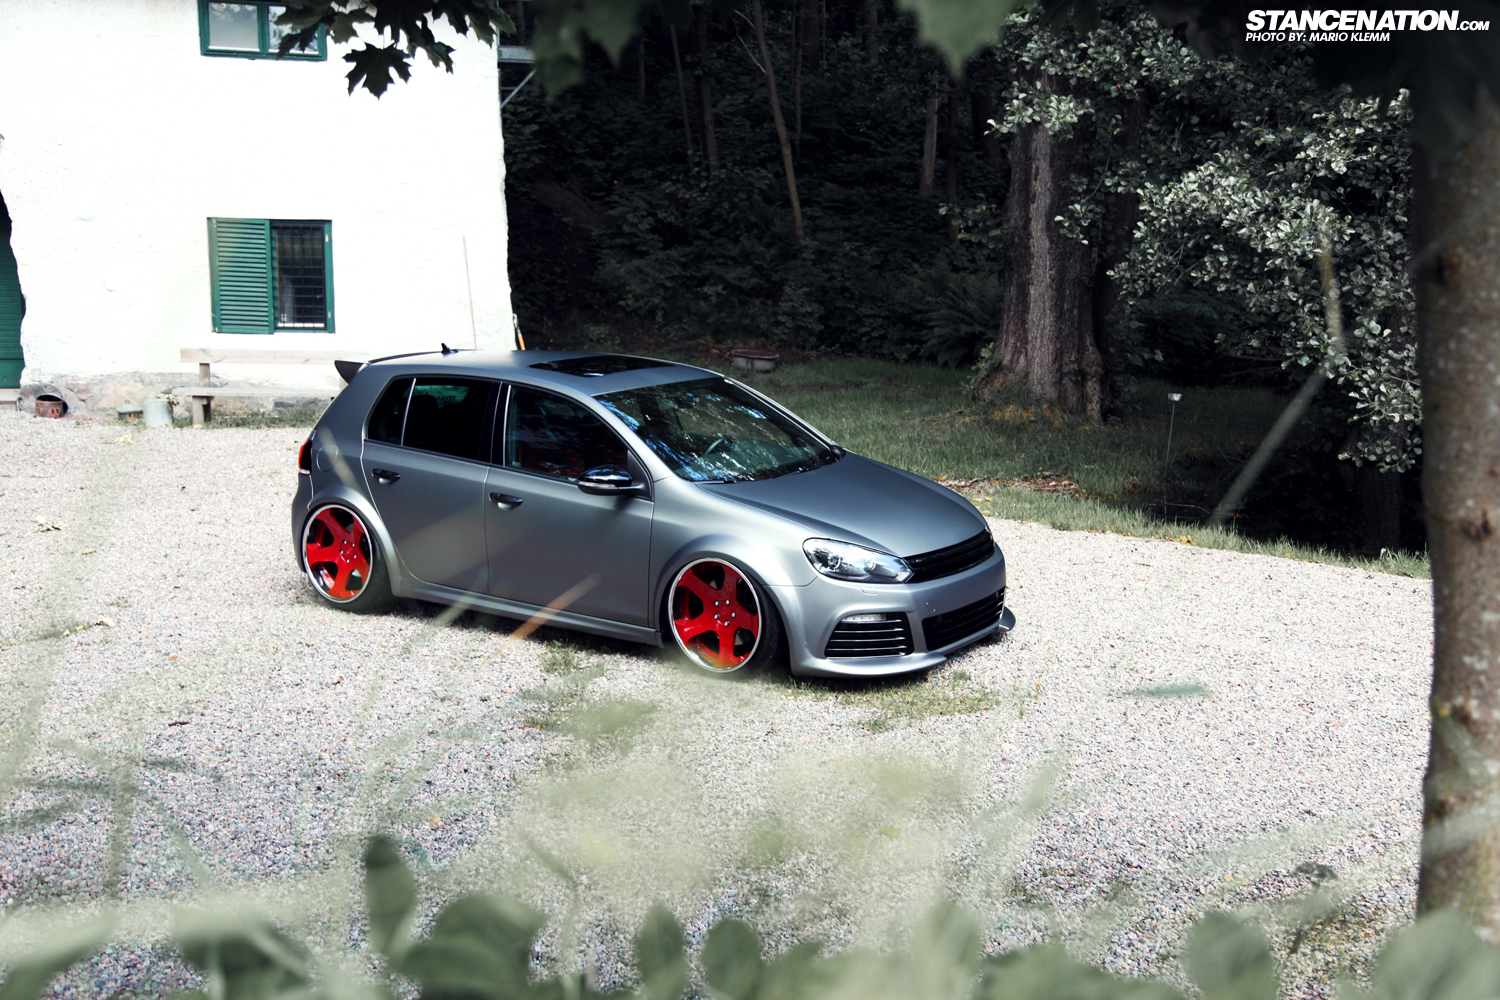 Custom Is The Word // Klarby's unique Golf R ...